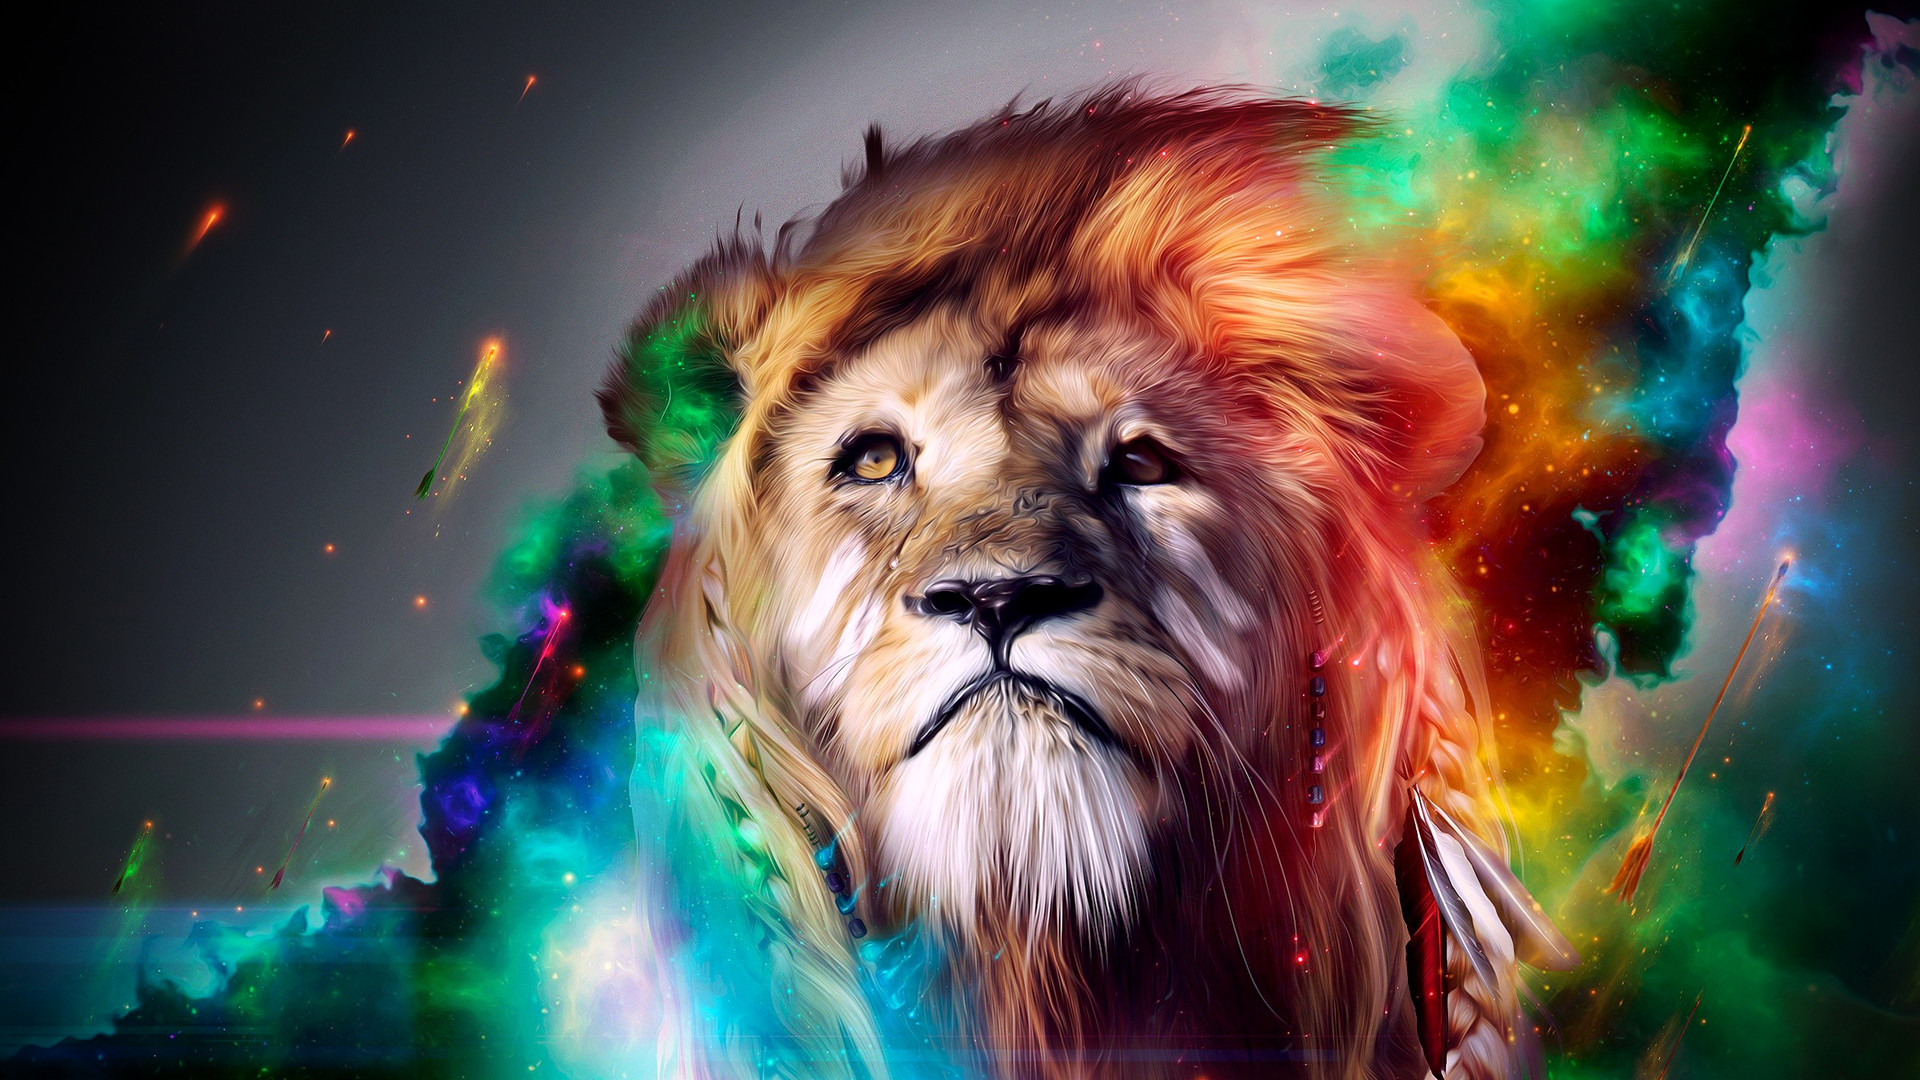 Res: 1920x1080, colorful tiger wallpaper colorful tiger wallpaper 9